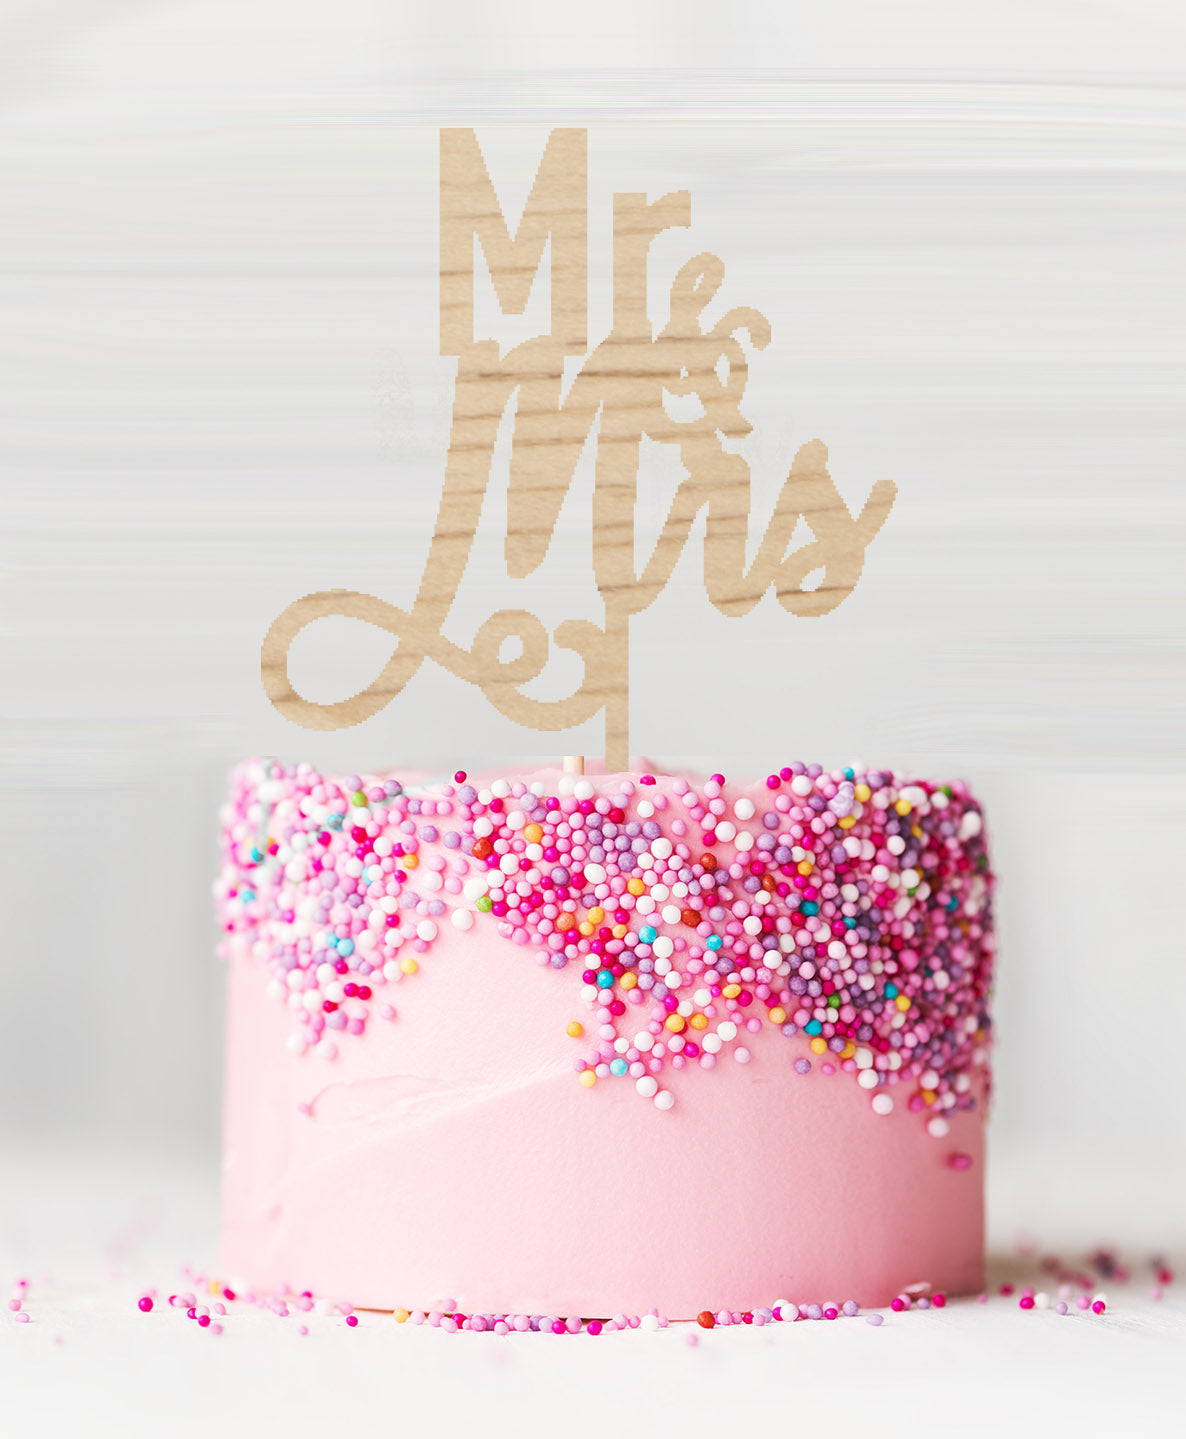 Mr and Mrs Pretty Cake Topper - Acrylic – LissieLou